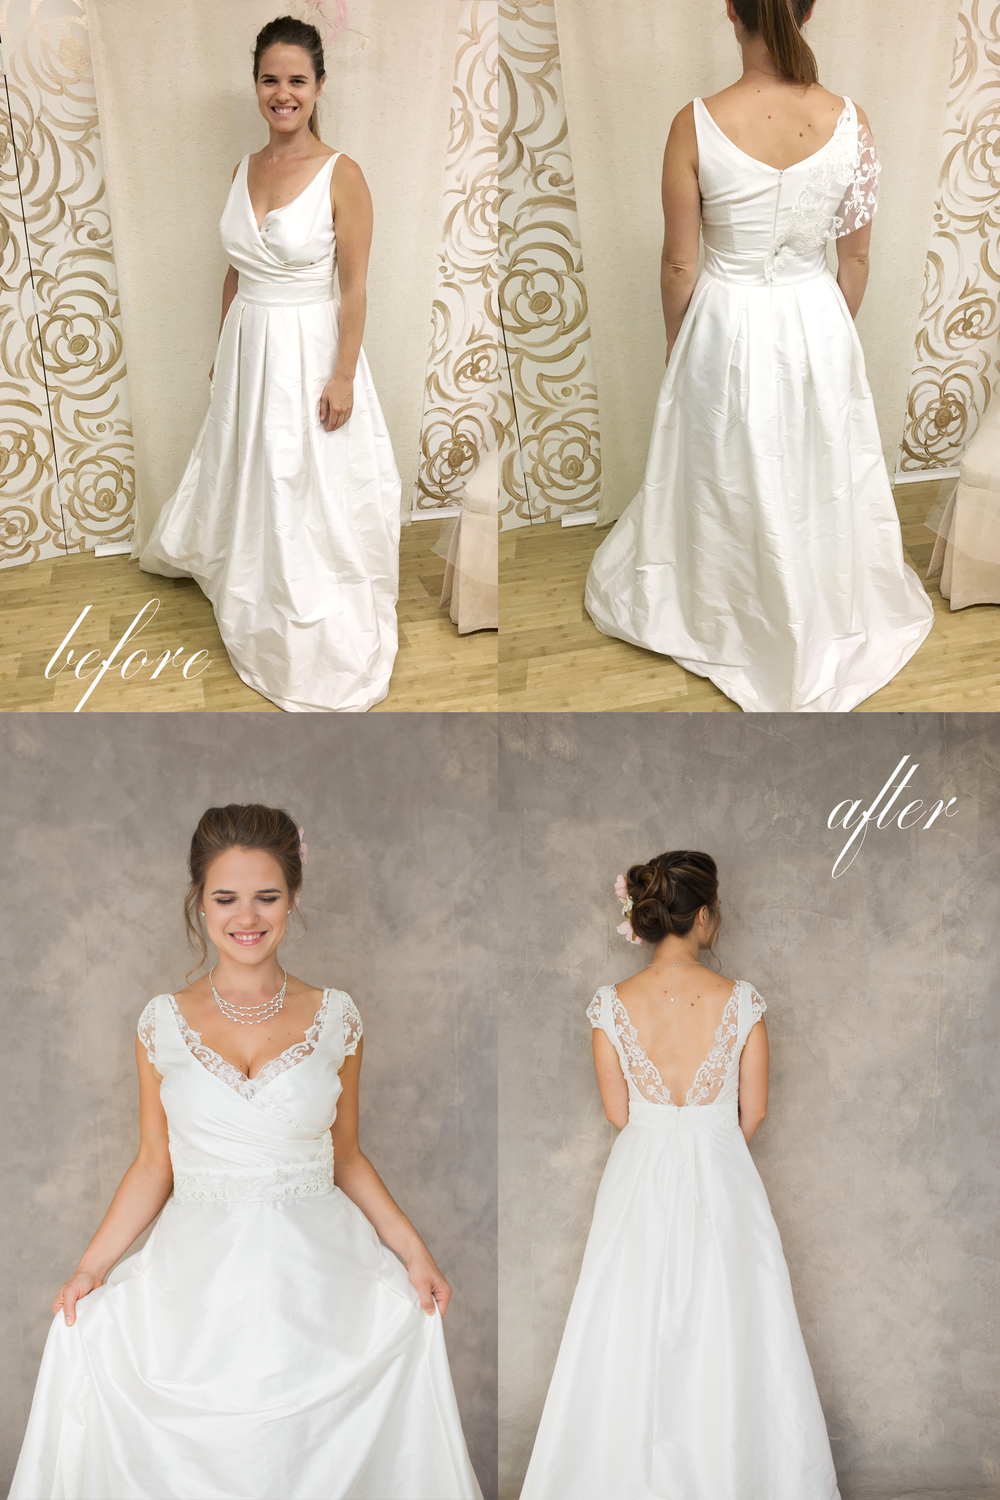 Zeita-Studios-Bridal-Refashion